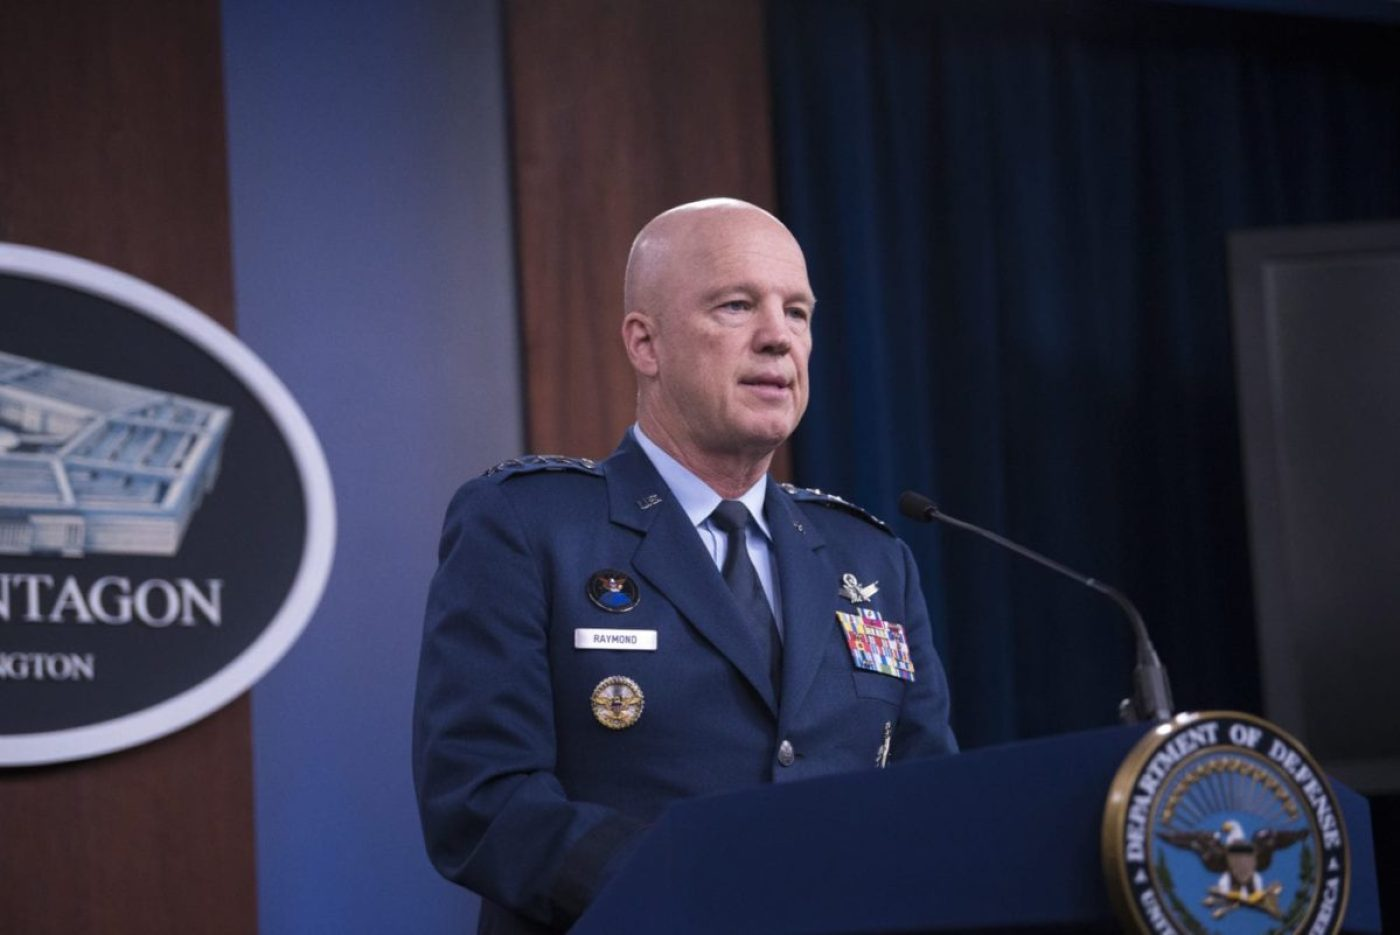 The chief of Space Operations of U.S. Space Force and commander of U.S. Space Command, Air Force Gen. John W. Raymond, briefs from the Pentagon Press Briefing Room about COVID-19, Washington, D.C., March 27, 2020. (DoD photo by Lisa Ferdinando)